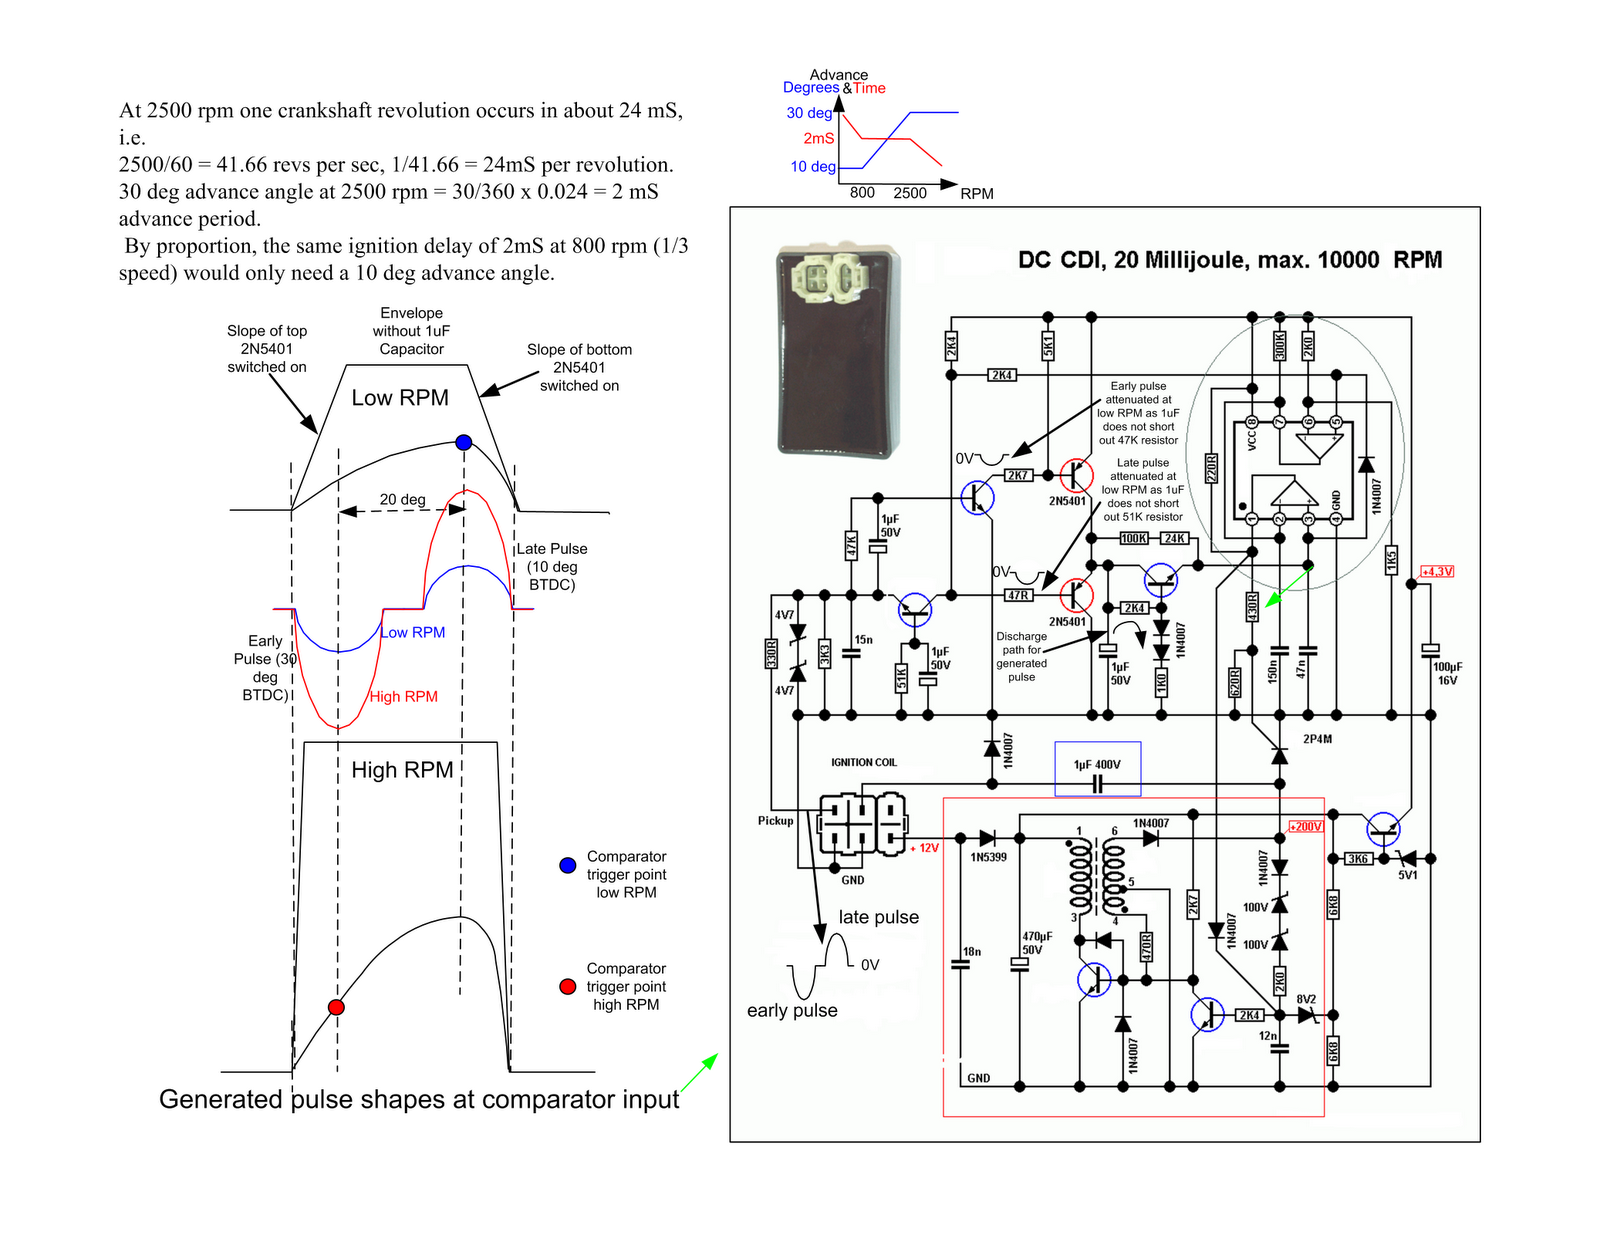 Chinese Dc Cdi Wiring Diagram 8 Pin List Of Schematic Circuit 6 Wire CDI  Box Diagram 8 Pin Cdi Wiring Diagram